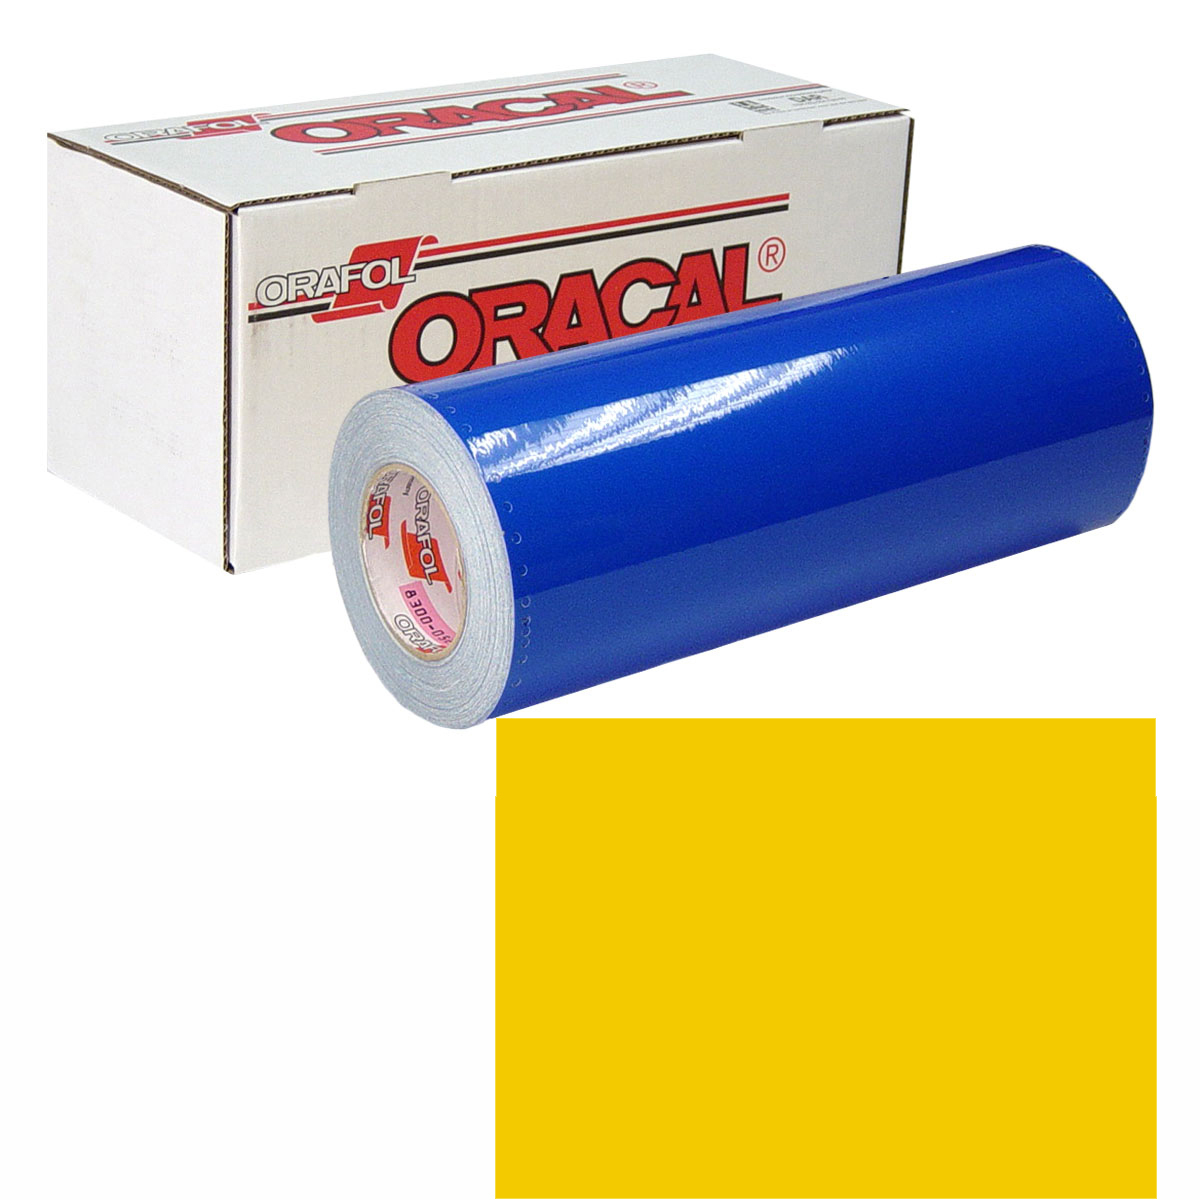 ORACAL 631 15in X 50yd 022 Light Yellow